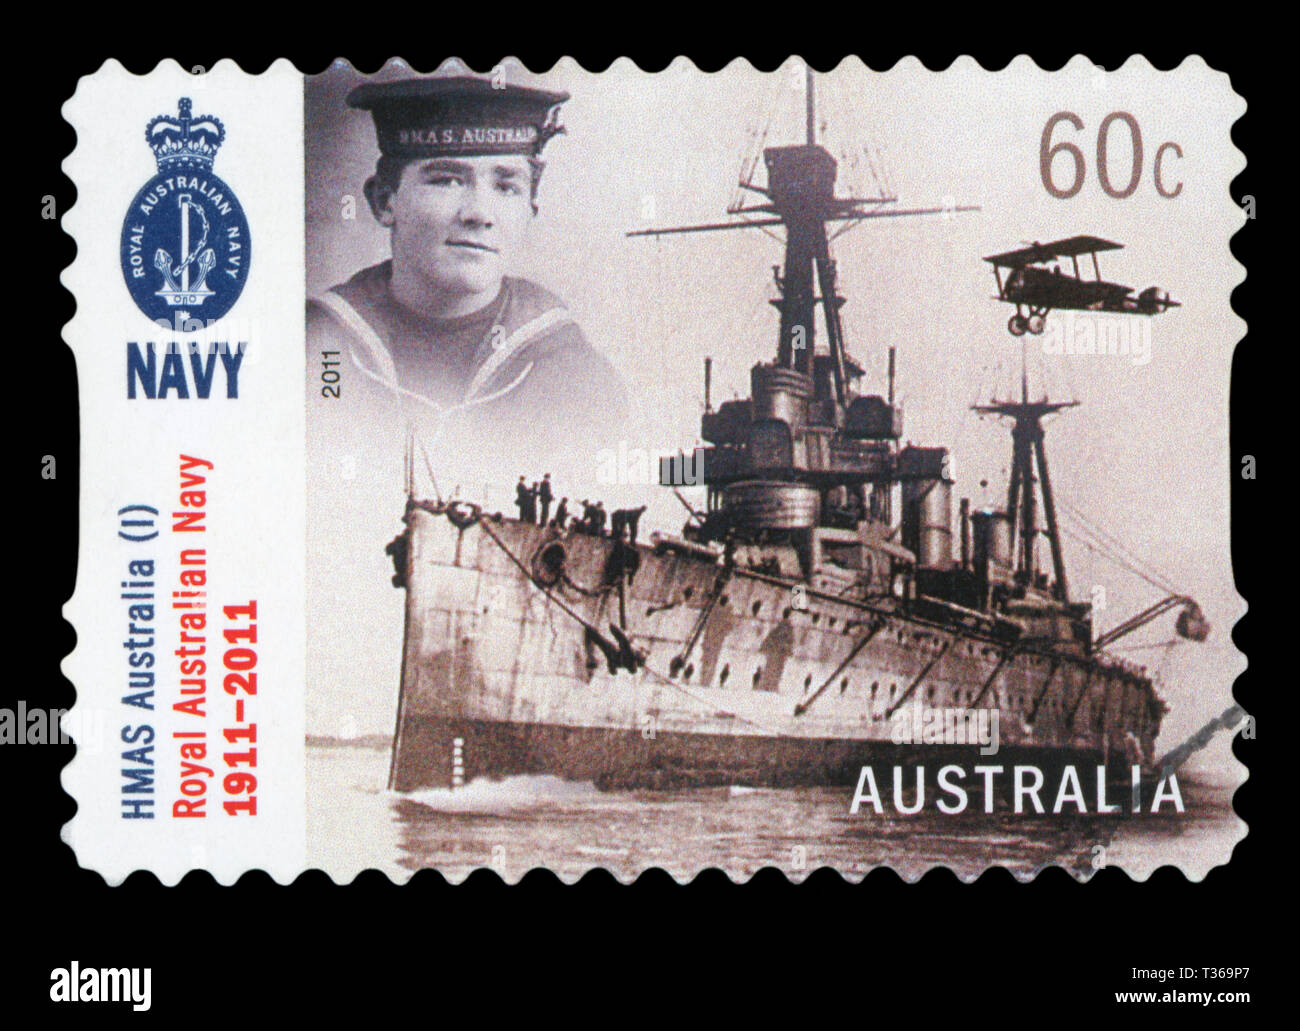 AUSTRALIA - CIRCA 2011: A used postage stamp from Australia, depicting an image of HMAS Australia I, one of three battleships built for the defence of - Stock Image